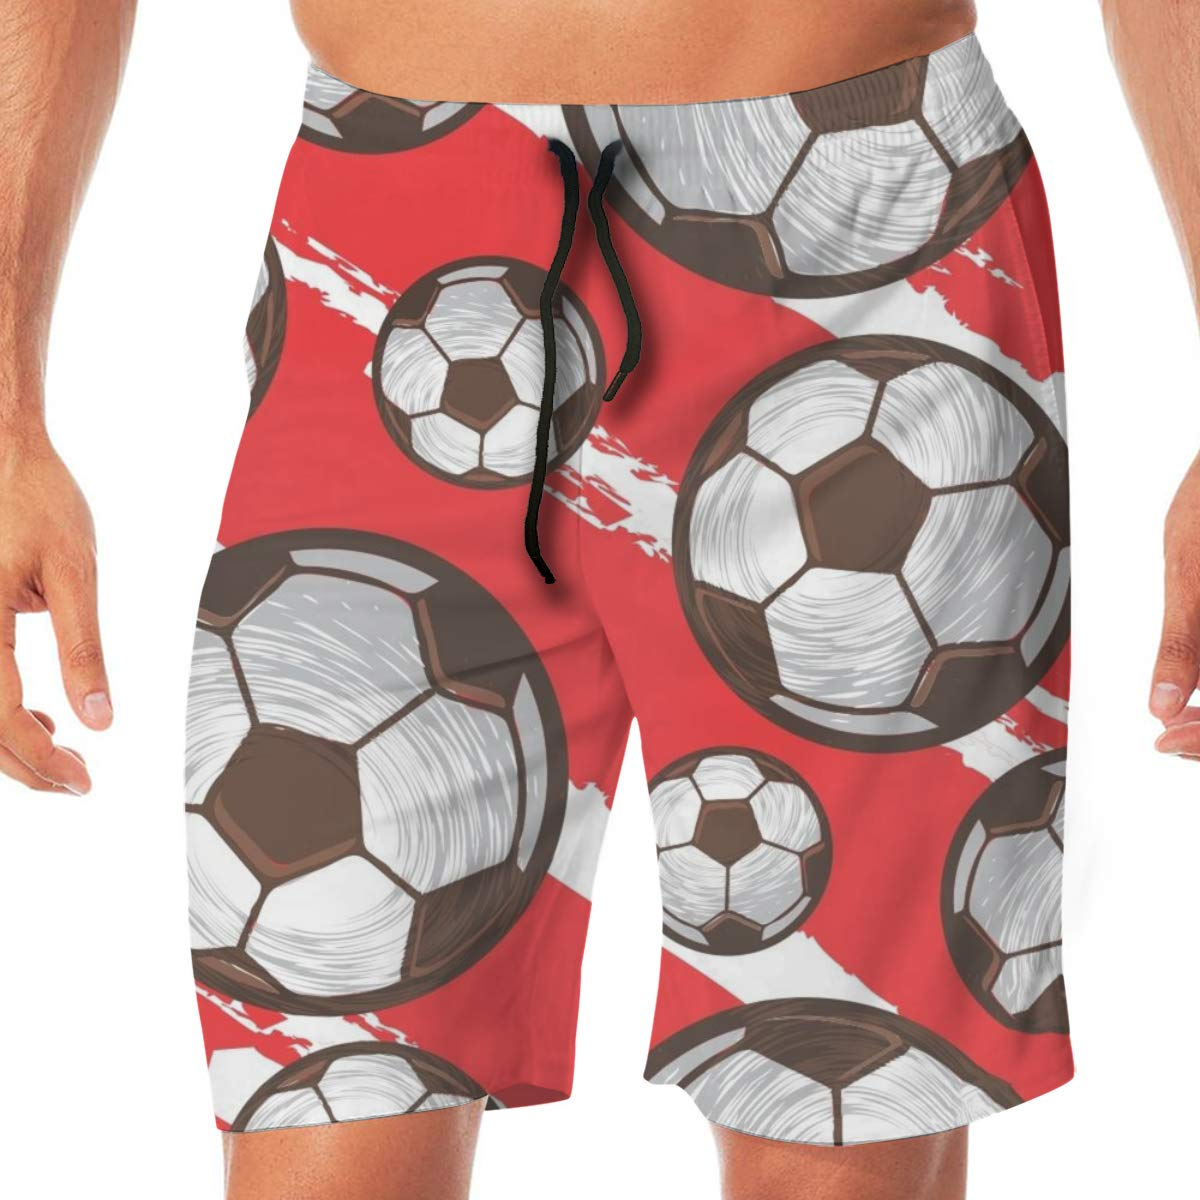 Woxianghe Mens Active Athletic Performance Shorts with Pockets Soccer